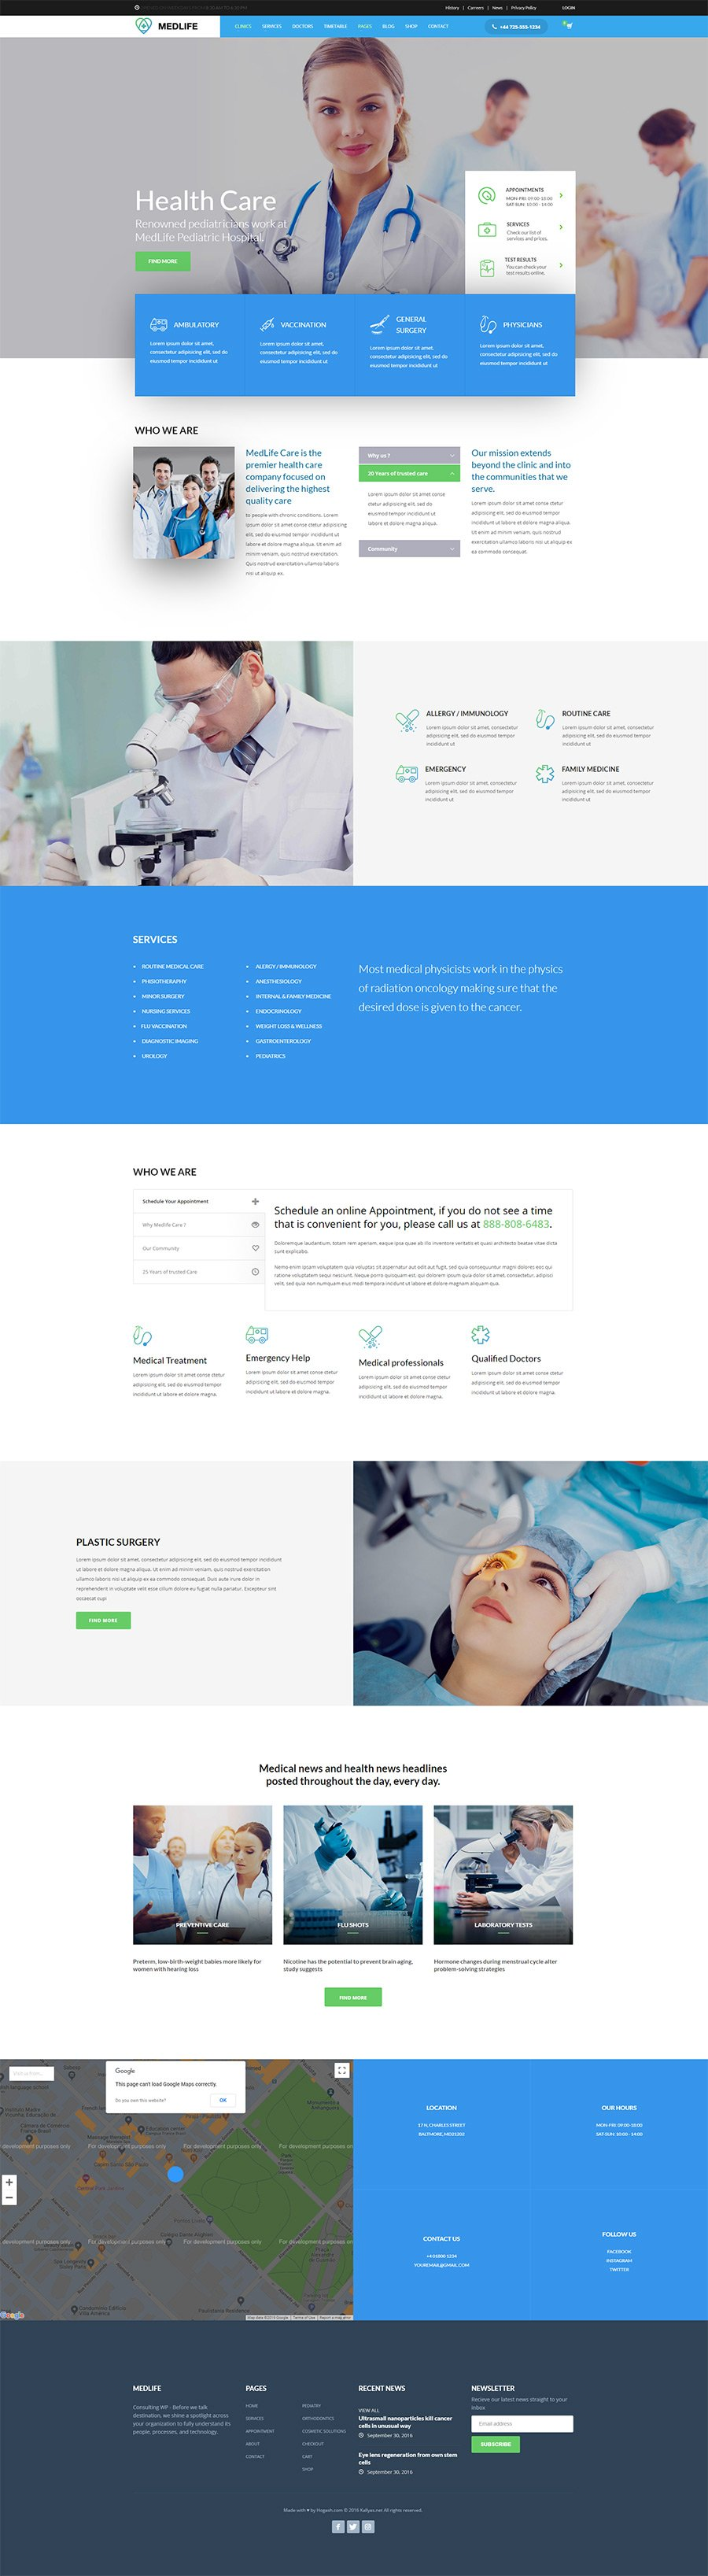 HealthCare Medical Clinic - Free PSD Template from Hogash Studio